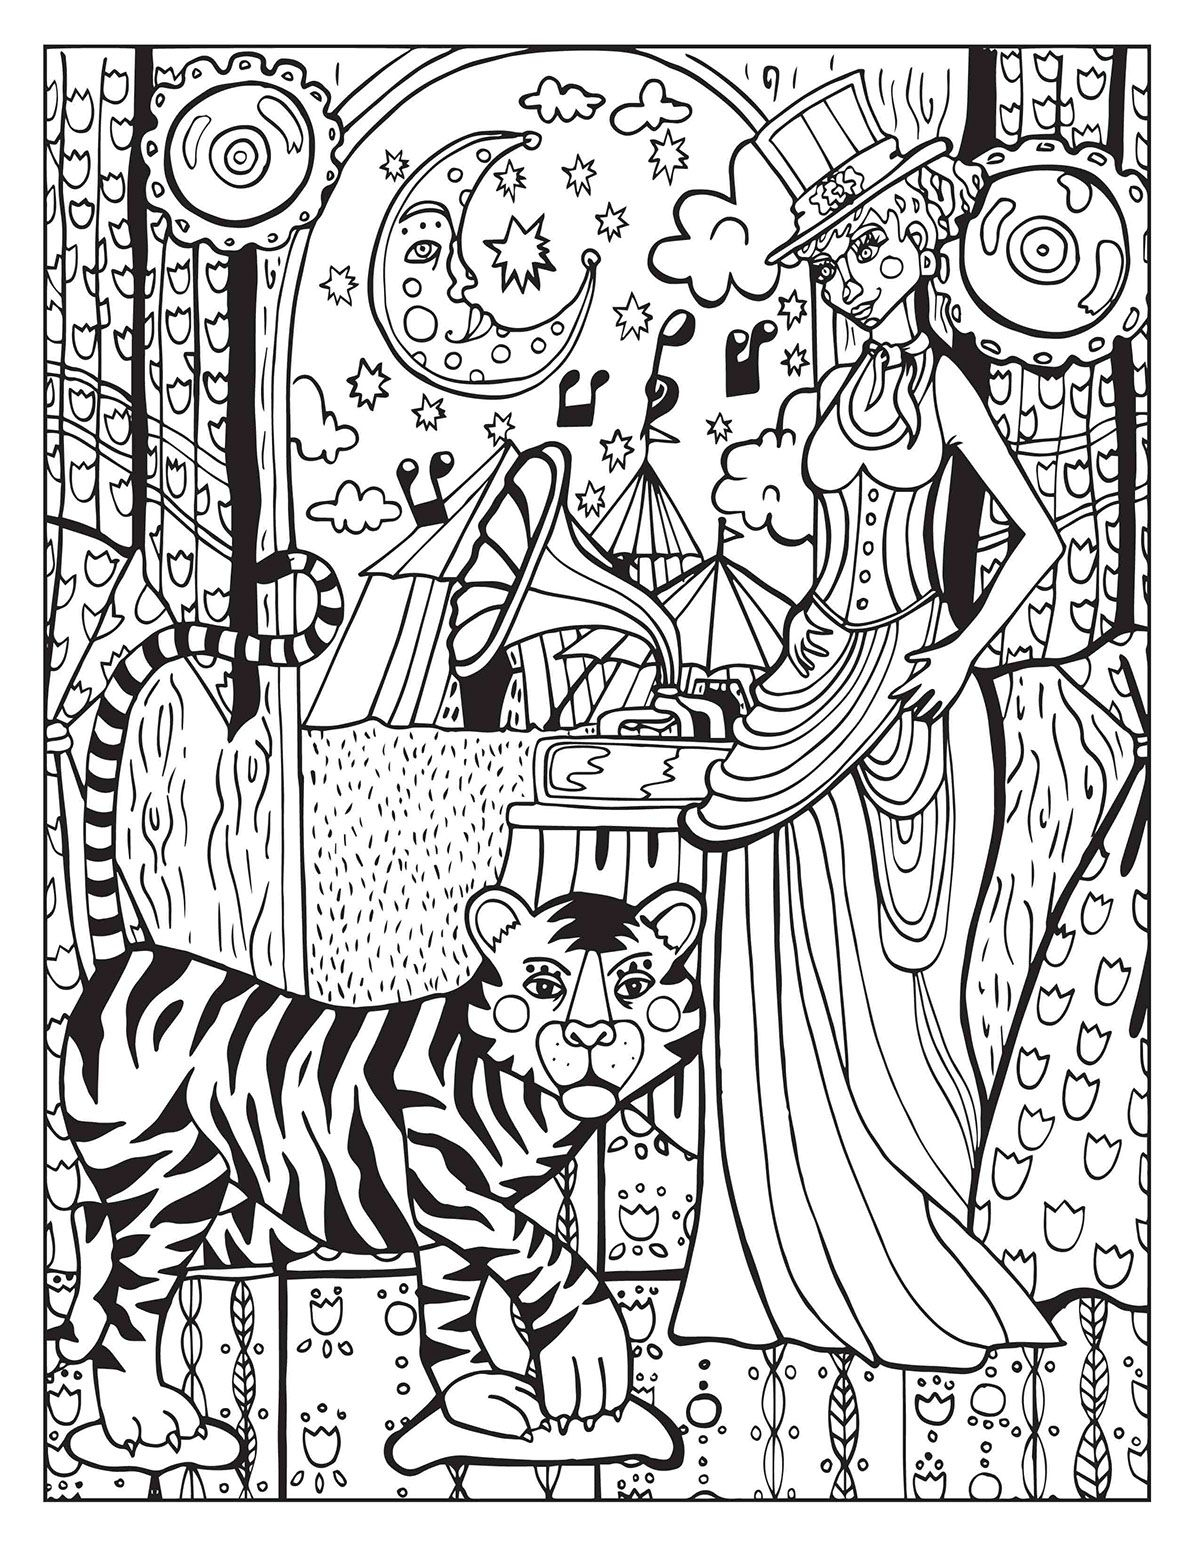 Circus Coloring Pages  Printable 9e - Free For Children